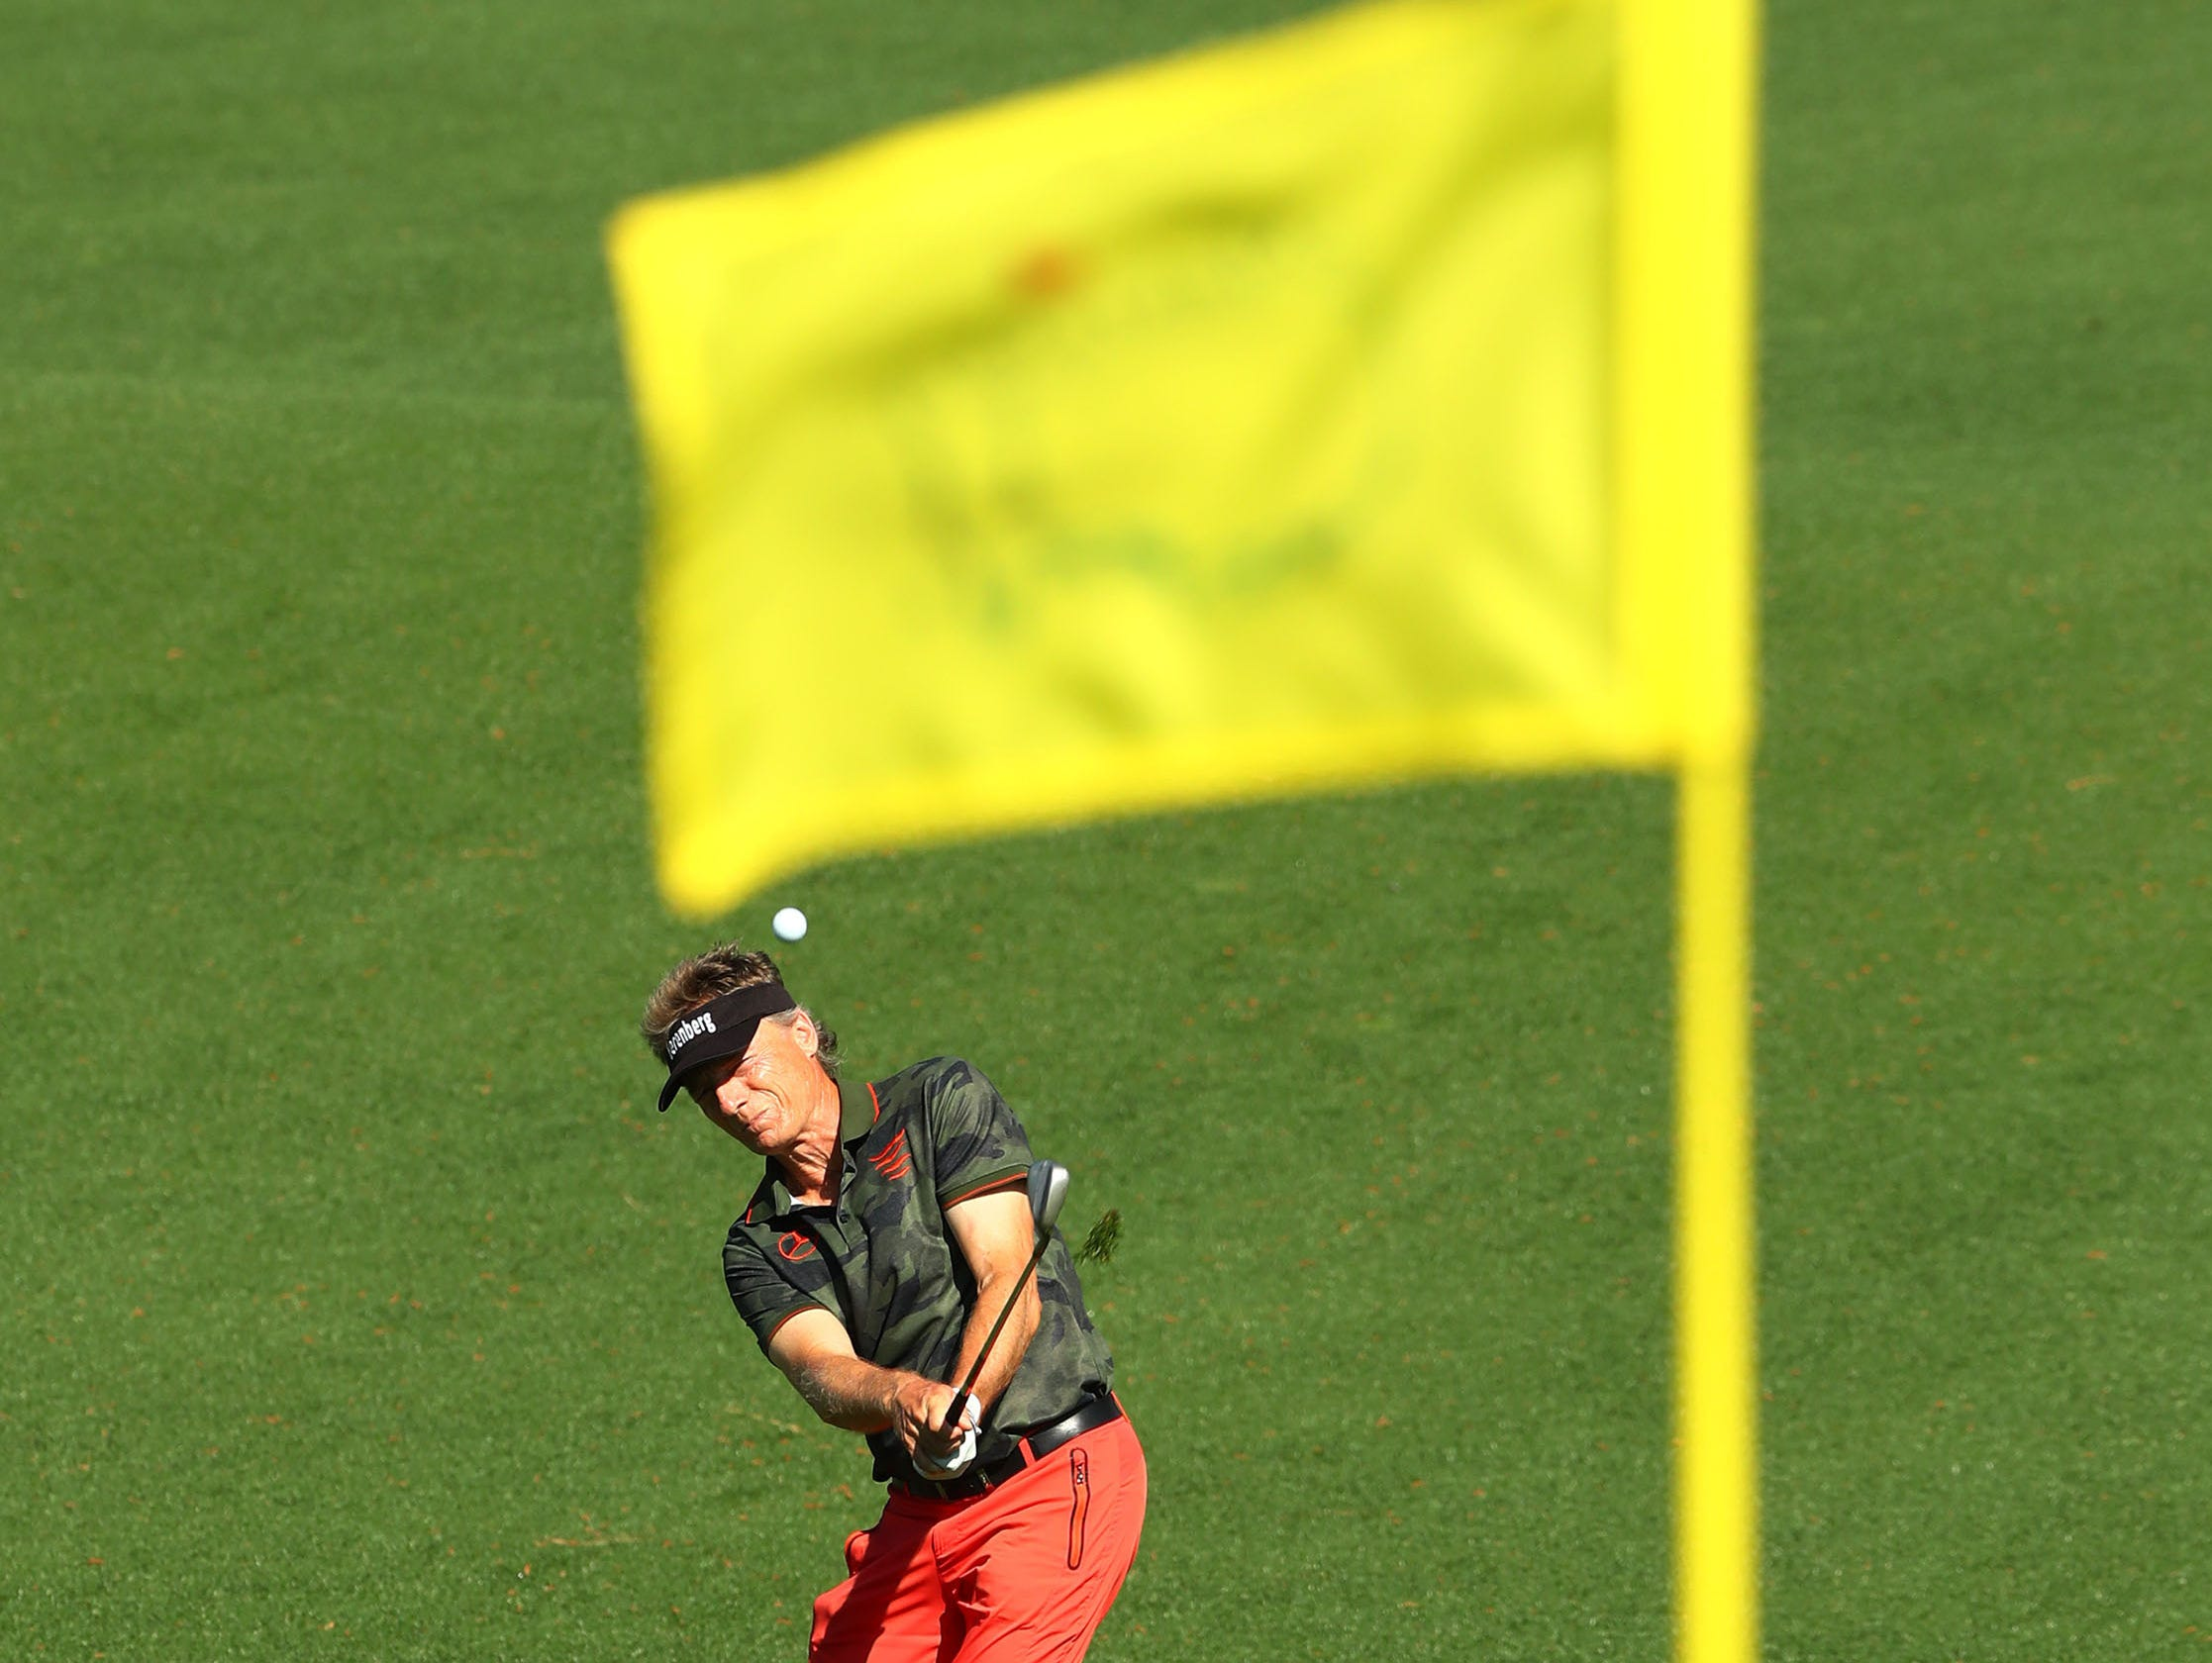 Apr 10, 2019; Augusta, GA, USA; Masters champion Bernhard Langer plays a shot to the second green during a practice round for The Masters golf tournament at Augusta National Golf Club. Mandatory Credit: Rob Schumacher-USA TODAY Sports